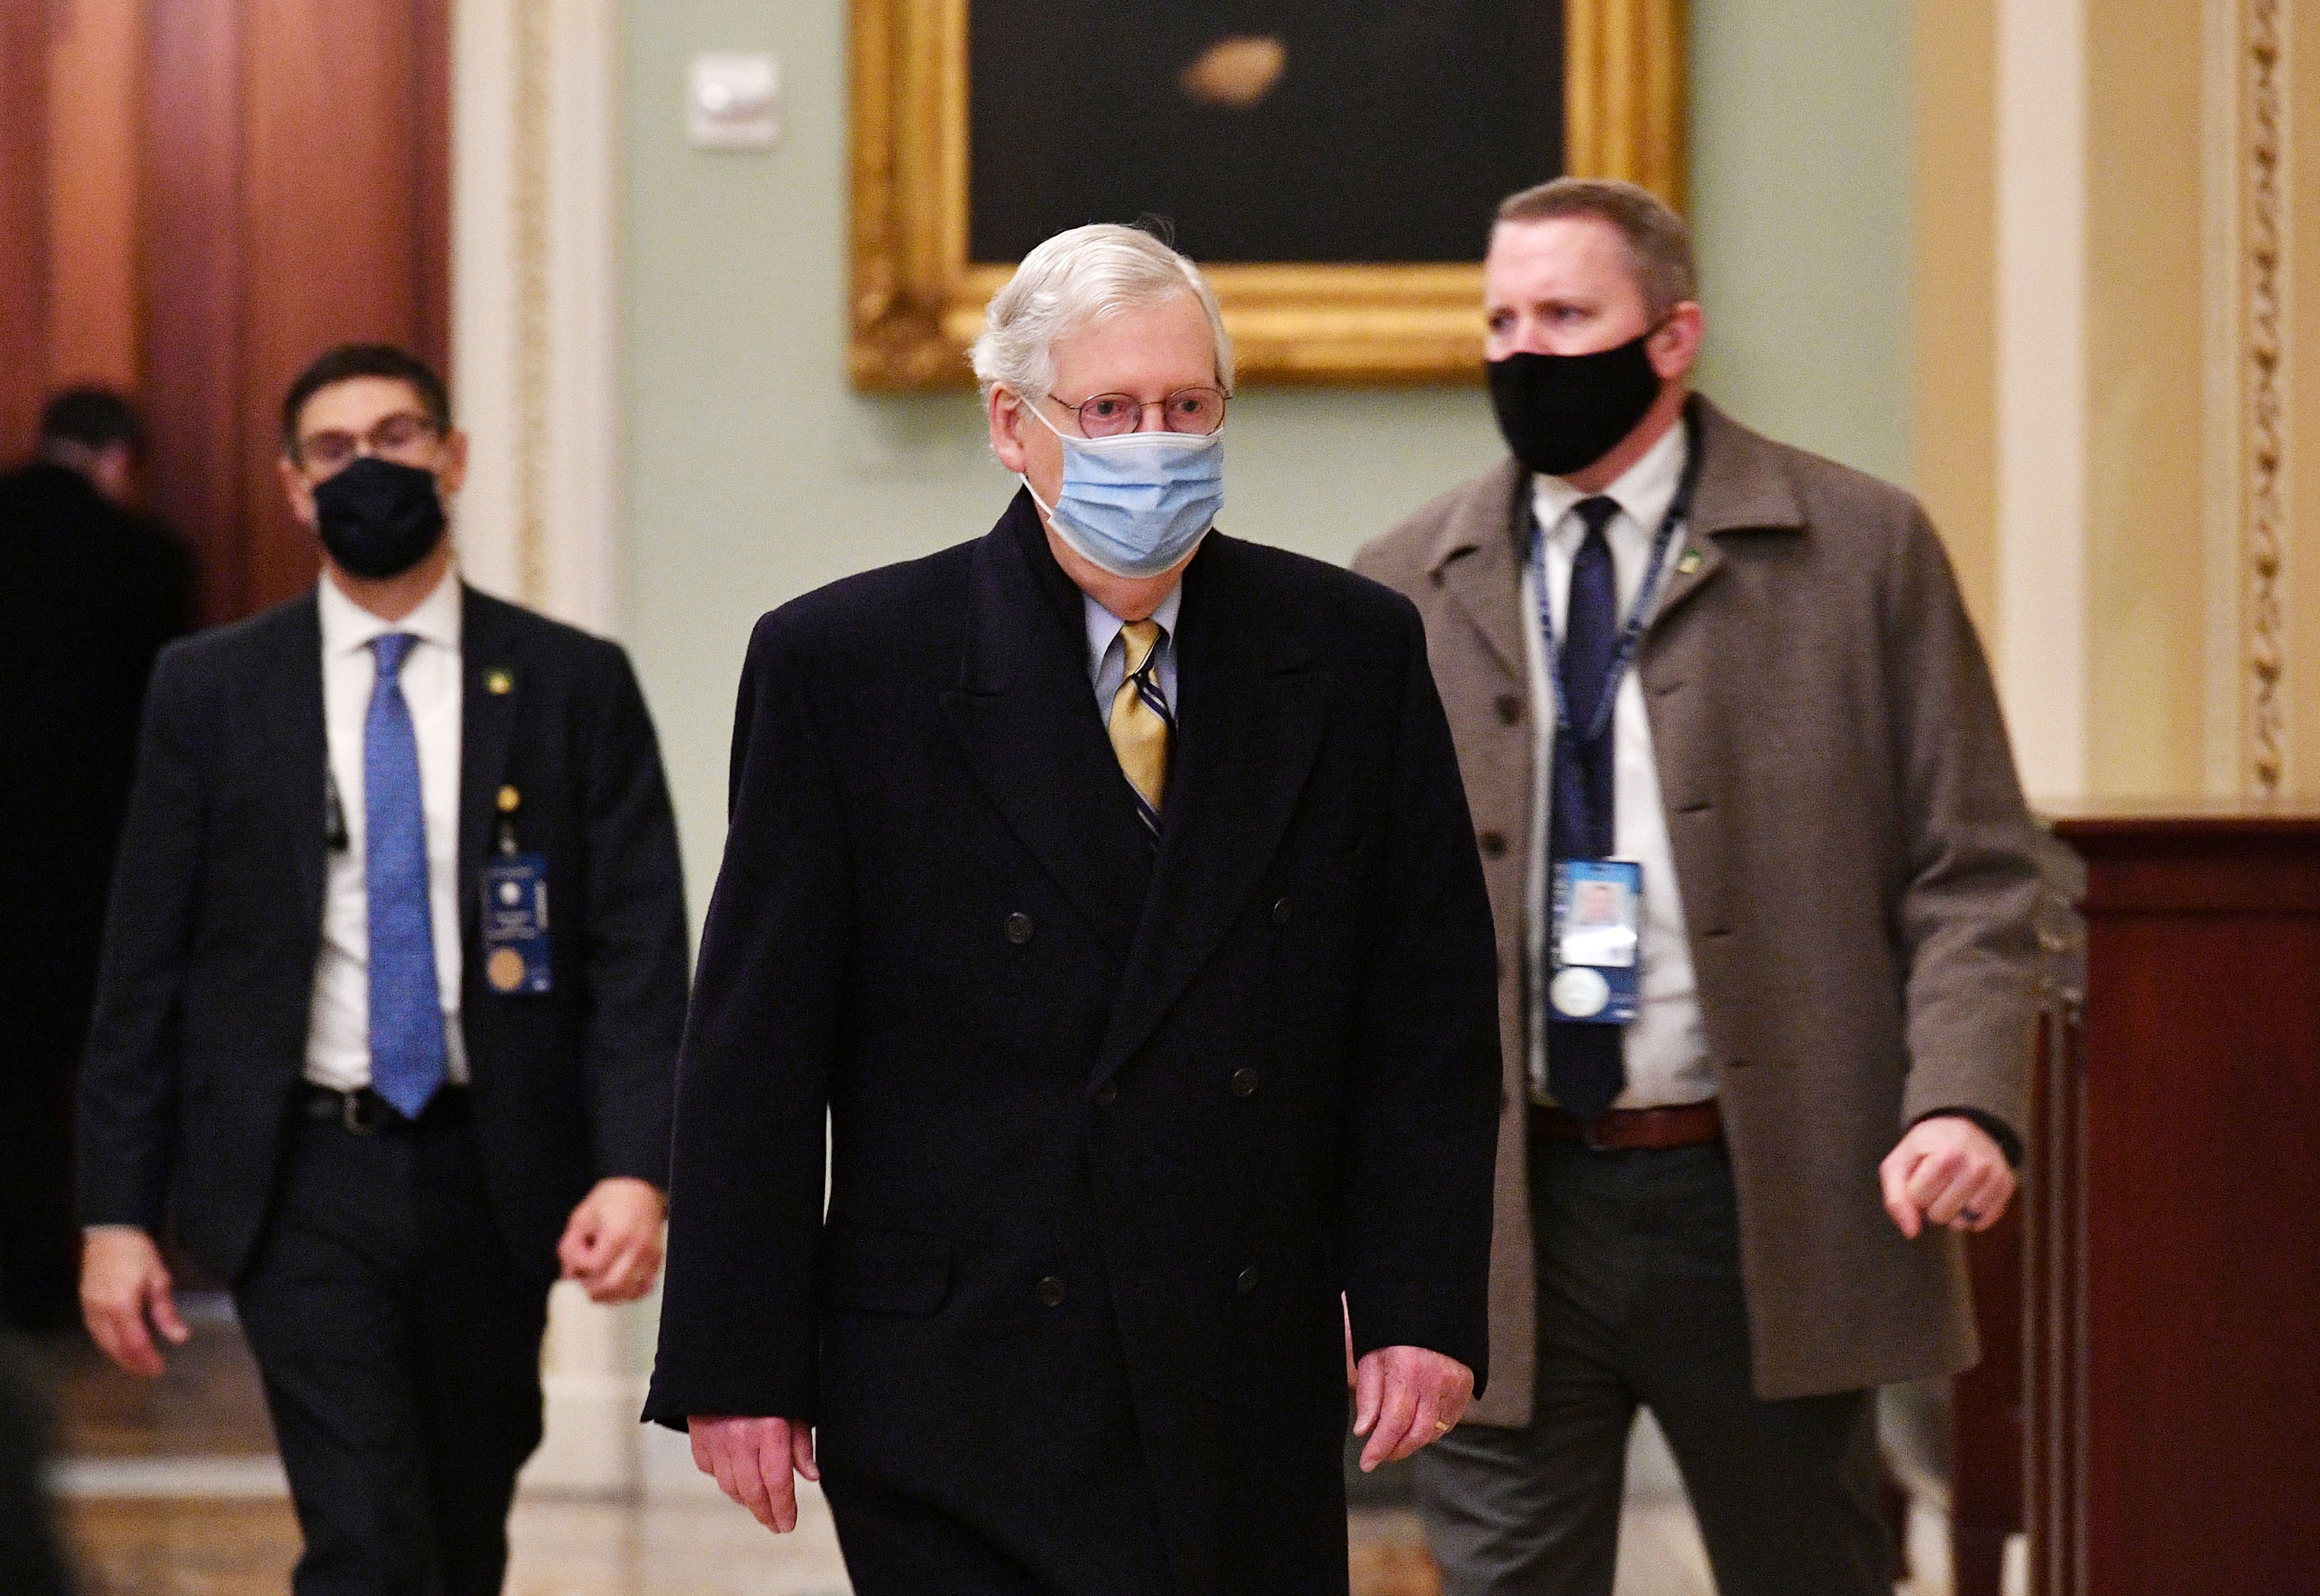 Senate GOP Leader Mitch McConnell arrives at the Capitol on February 13.